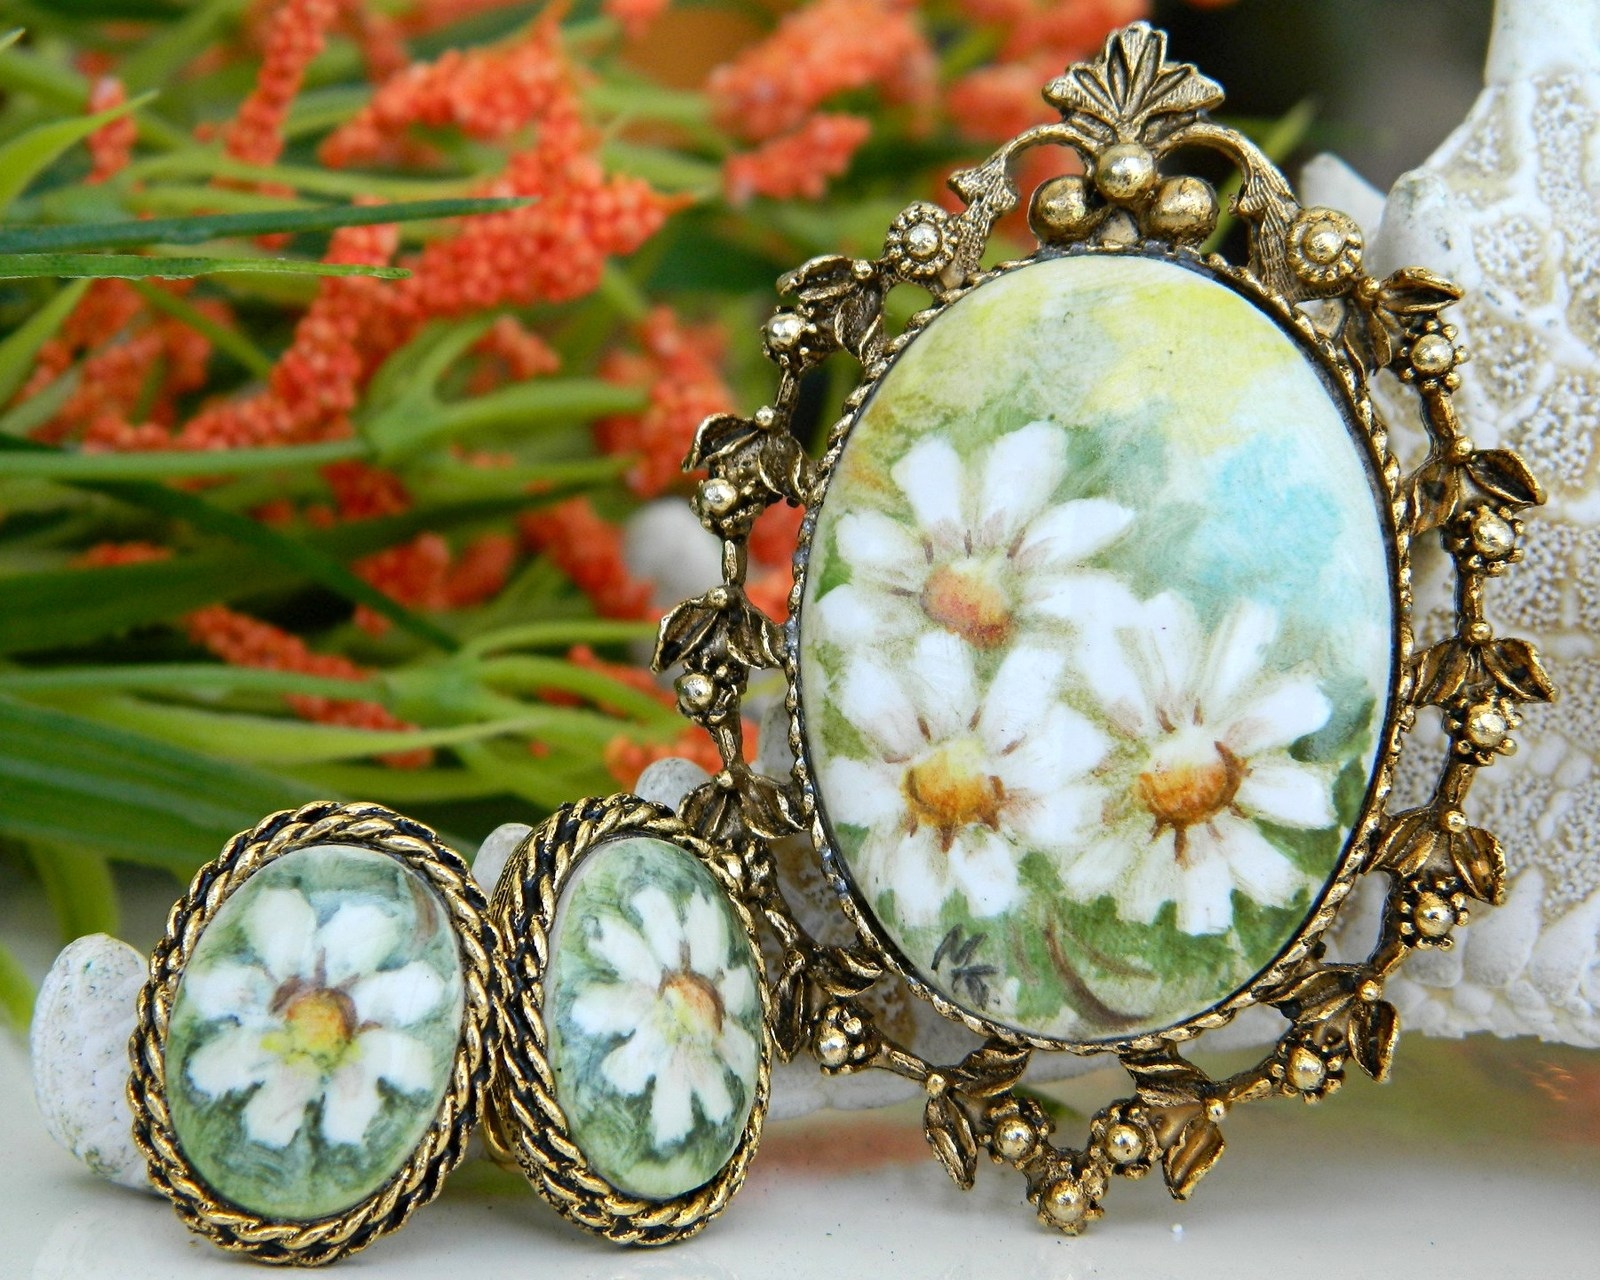 Vintage daisy hand painted porcelain brooch pendant earrings